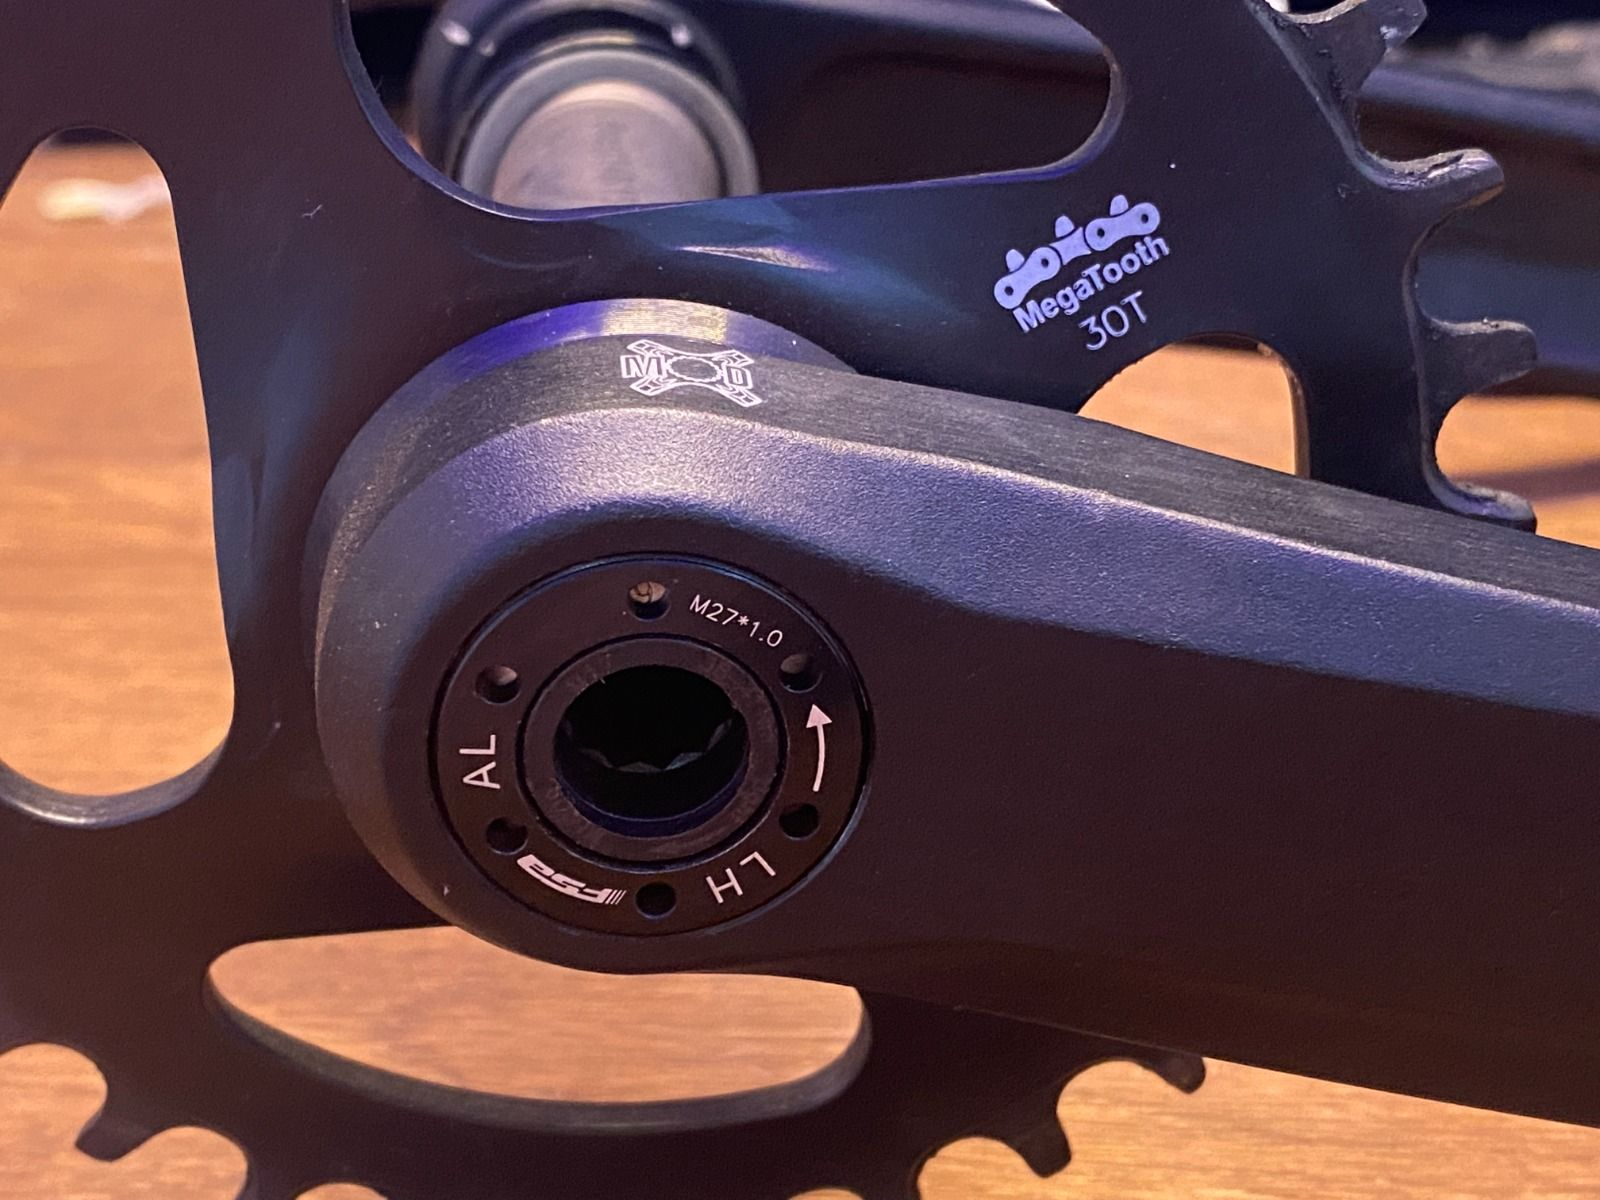 FSA Comet, Modular 1x, 30T Direct Mount Chainring, MegaTooth Technology, Boost Spacing